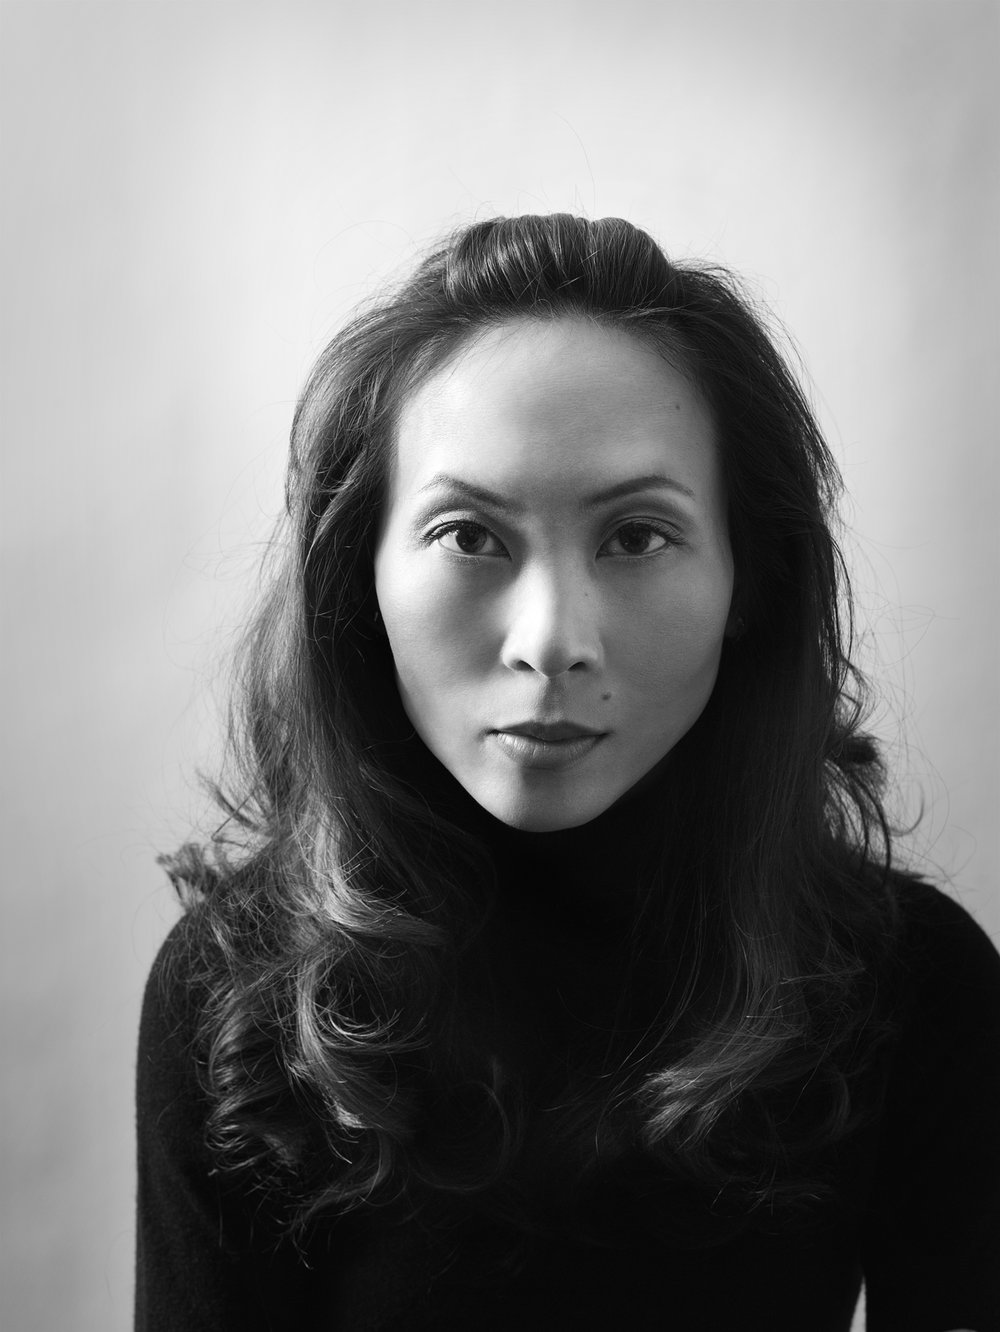 Natasha Jen, Pentagram  Natasha Jen is a graphic designer and partner at Pentagram New York. Born in Taipei, Taiwan, her work is recognized for its innovative use of graphic, digital, and spatial interventions that challenge the critical bounding assumptions surrounding media and culture.